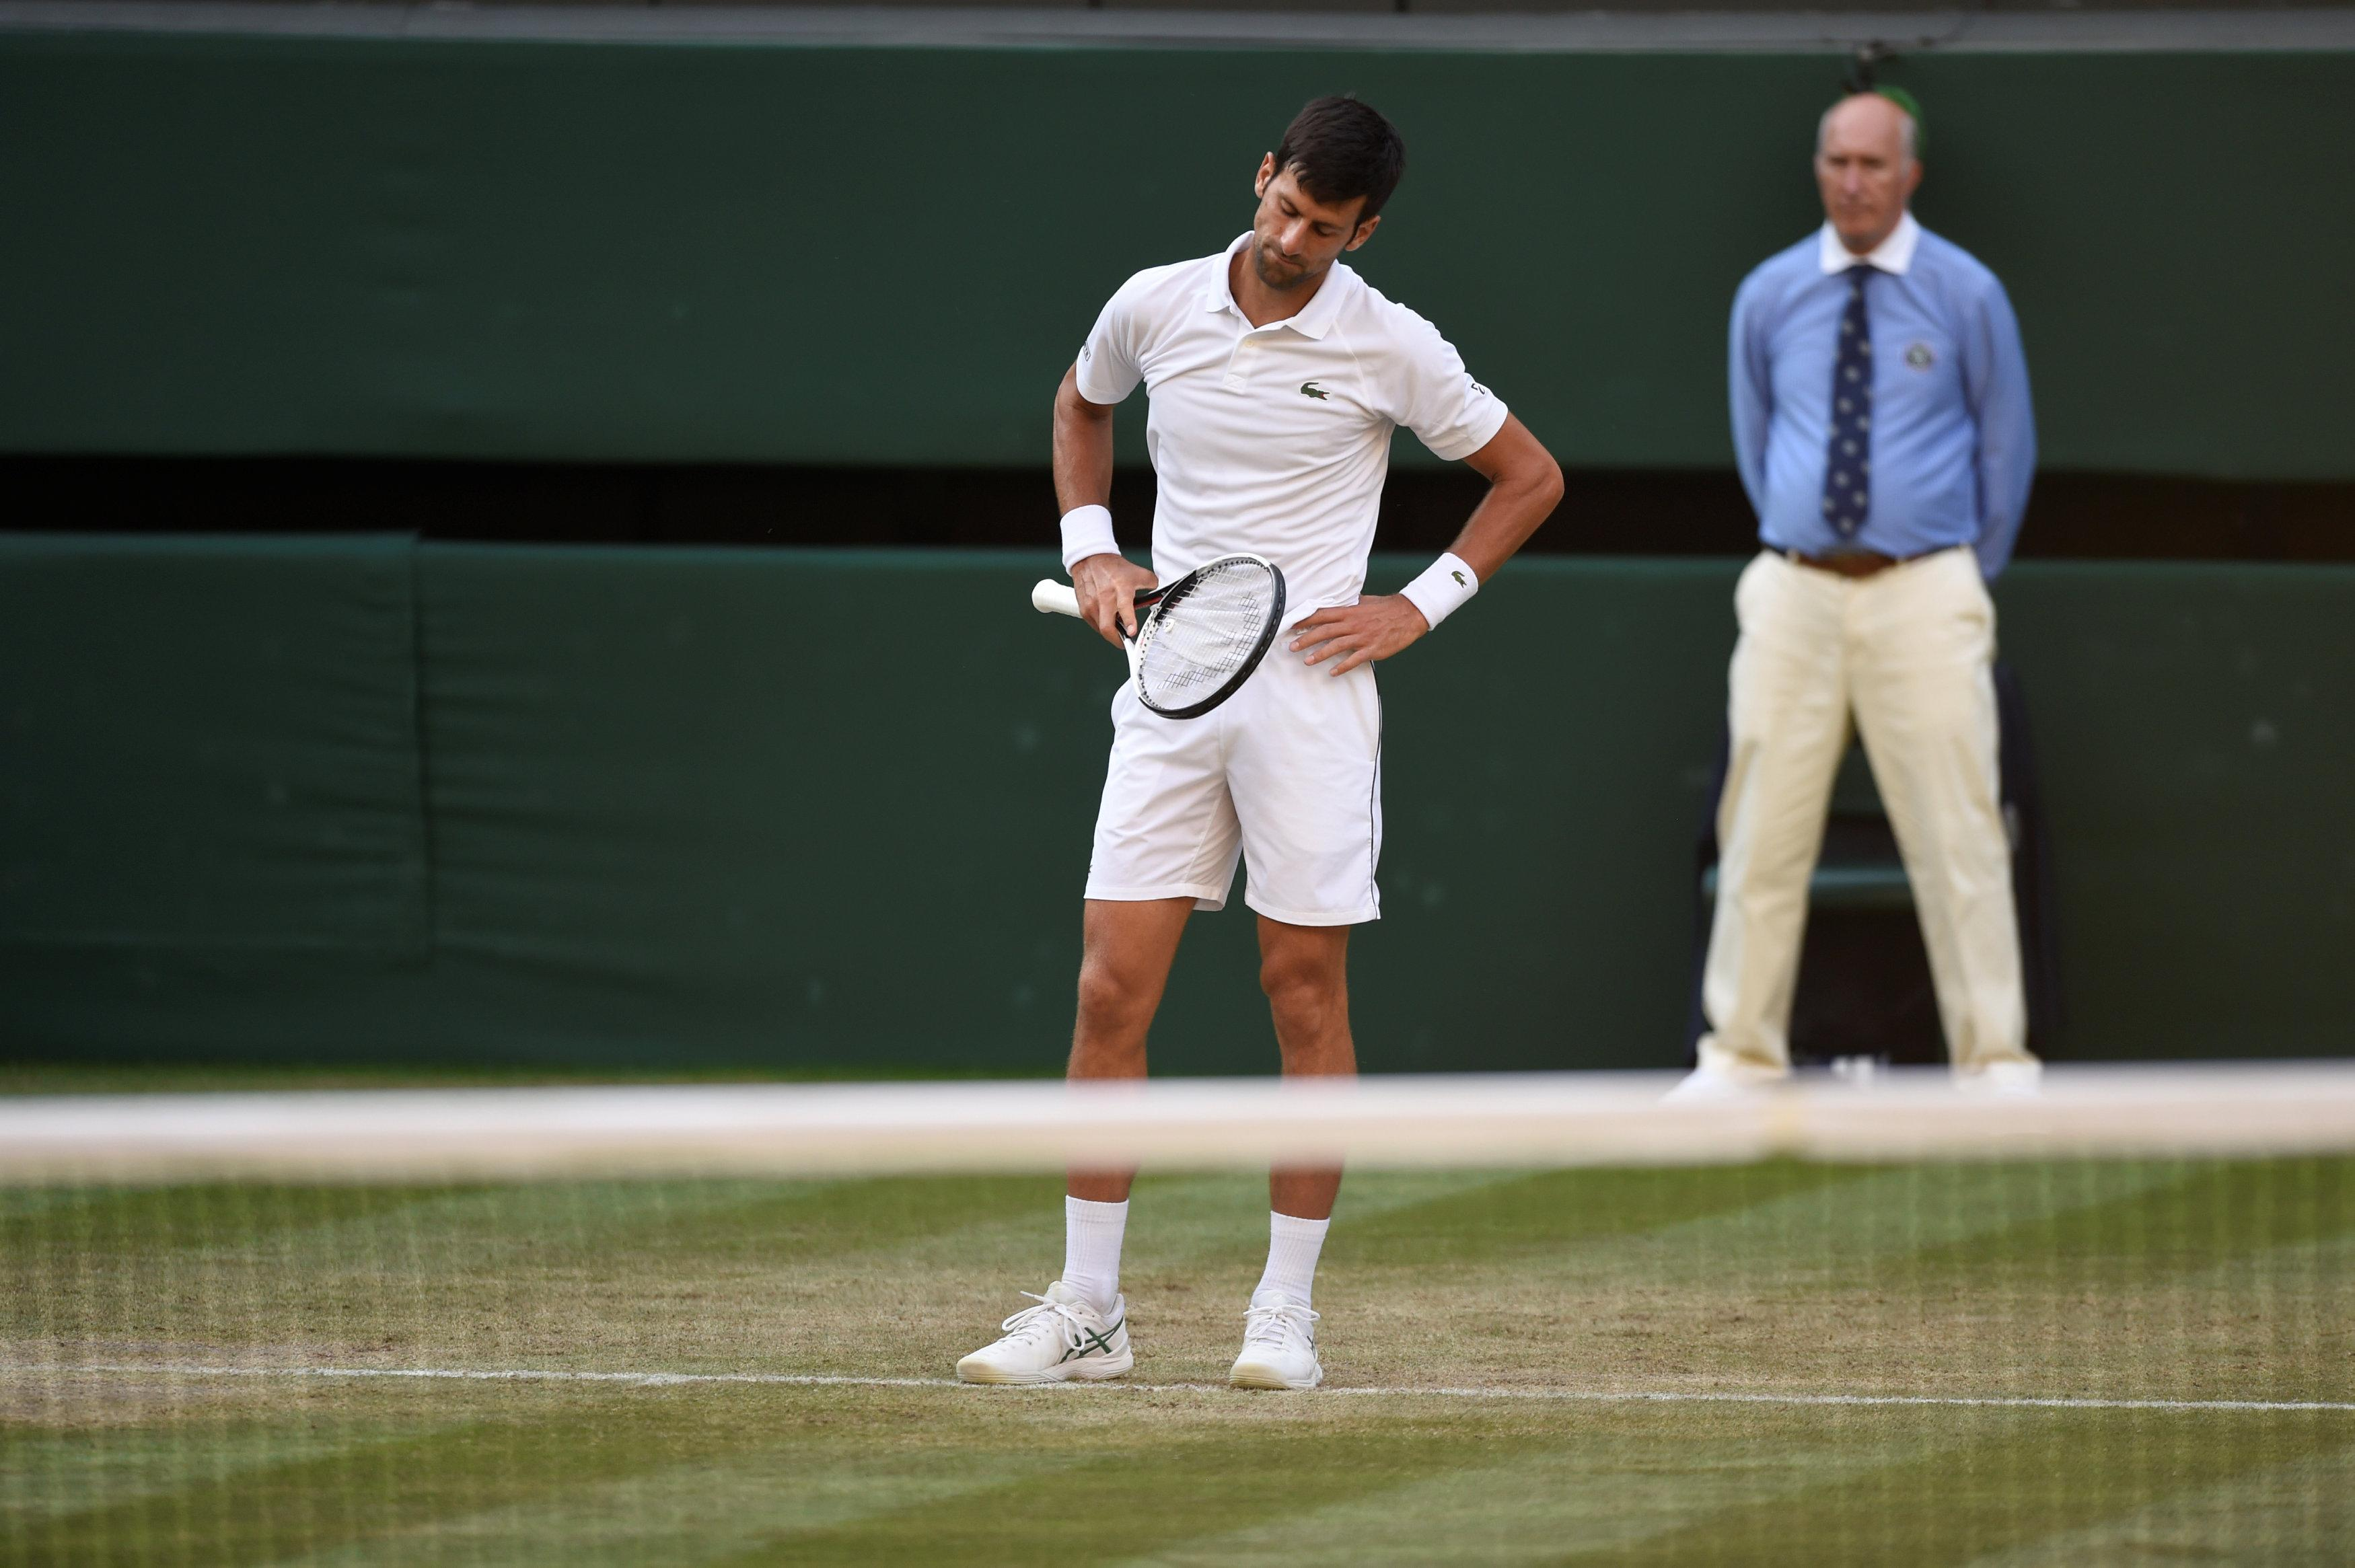 Edmund frustrated Djokovic during the clash on Centre Court